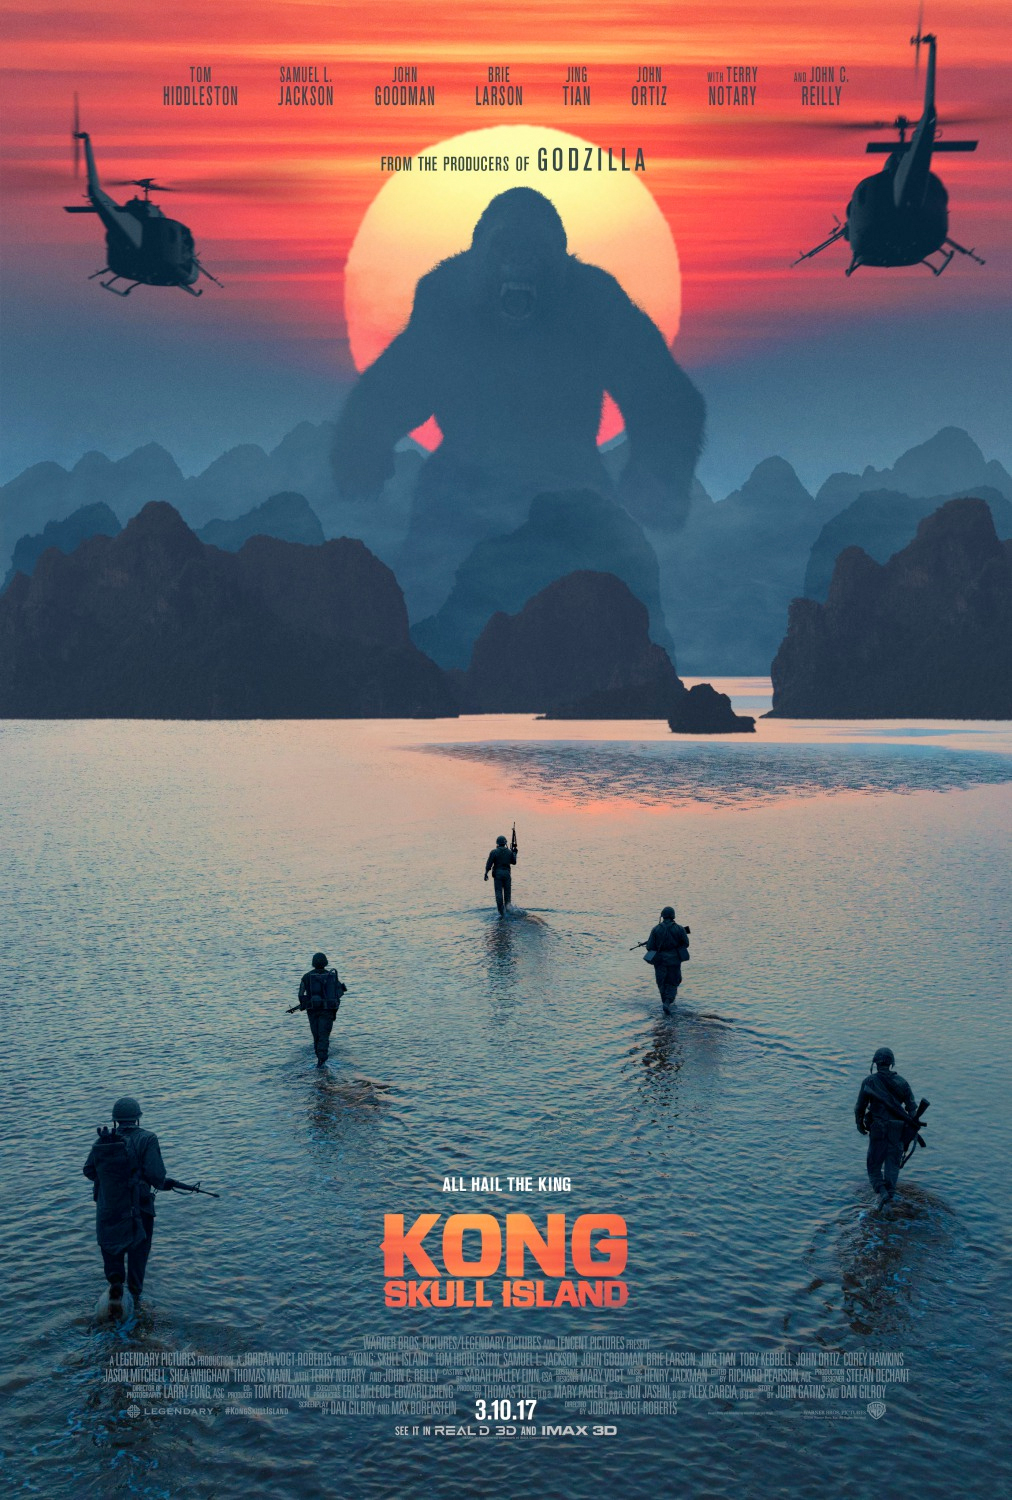 posters movie island kong skull poster